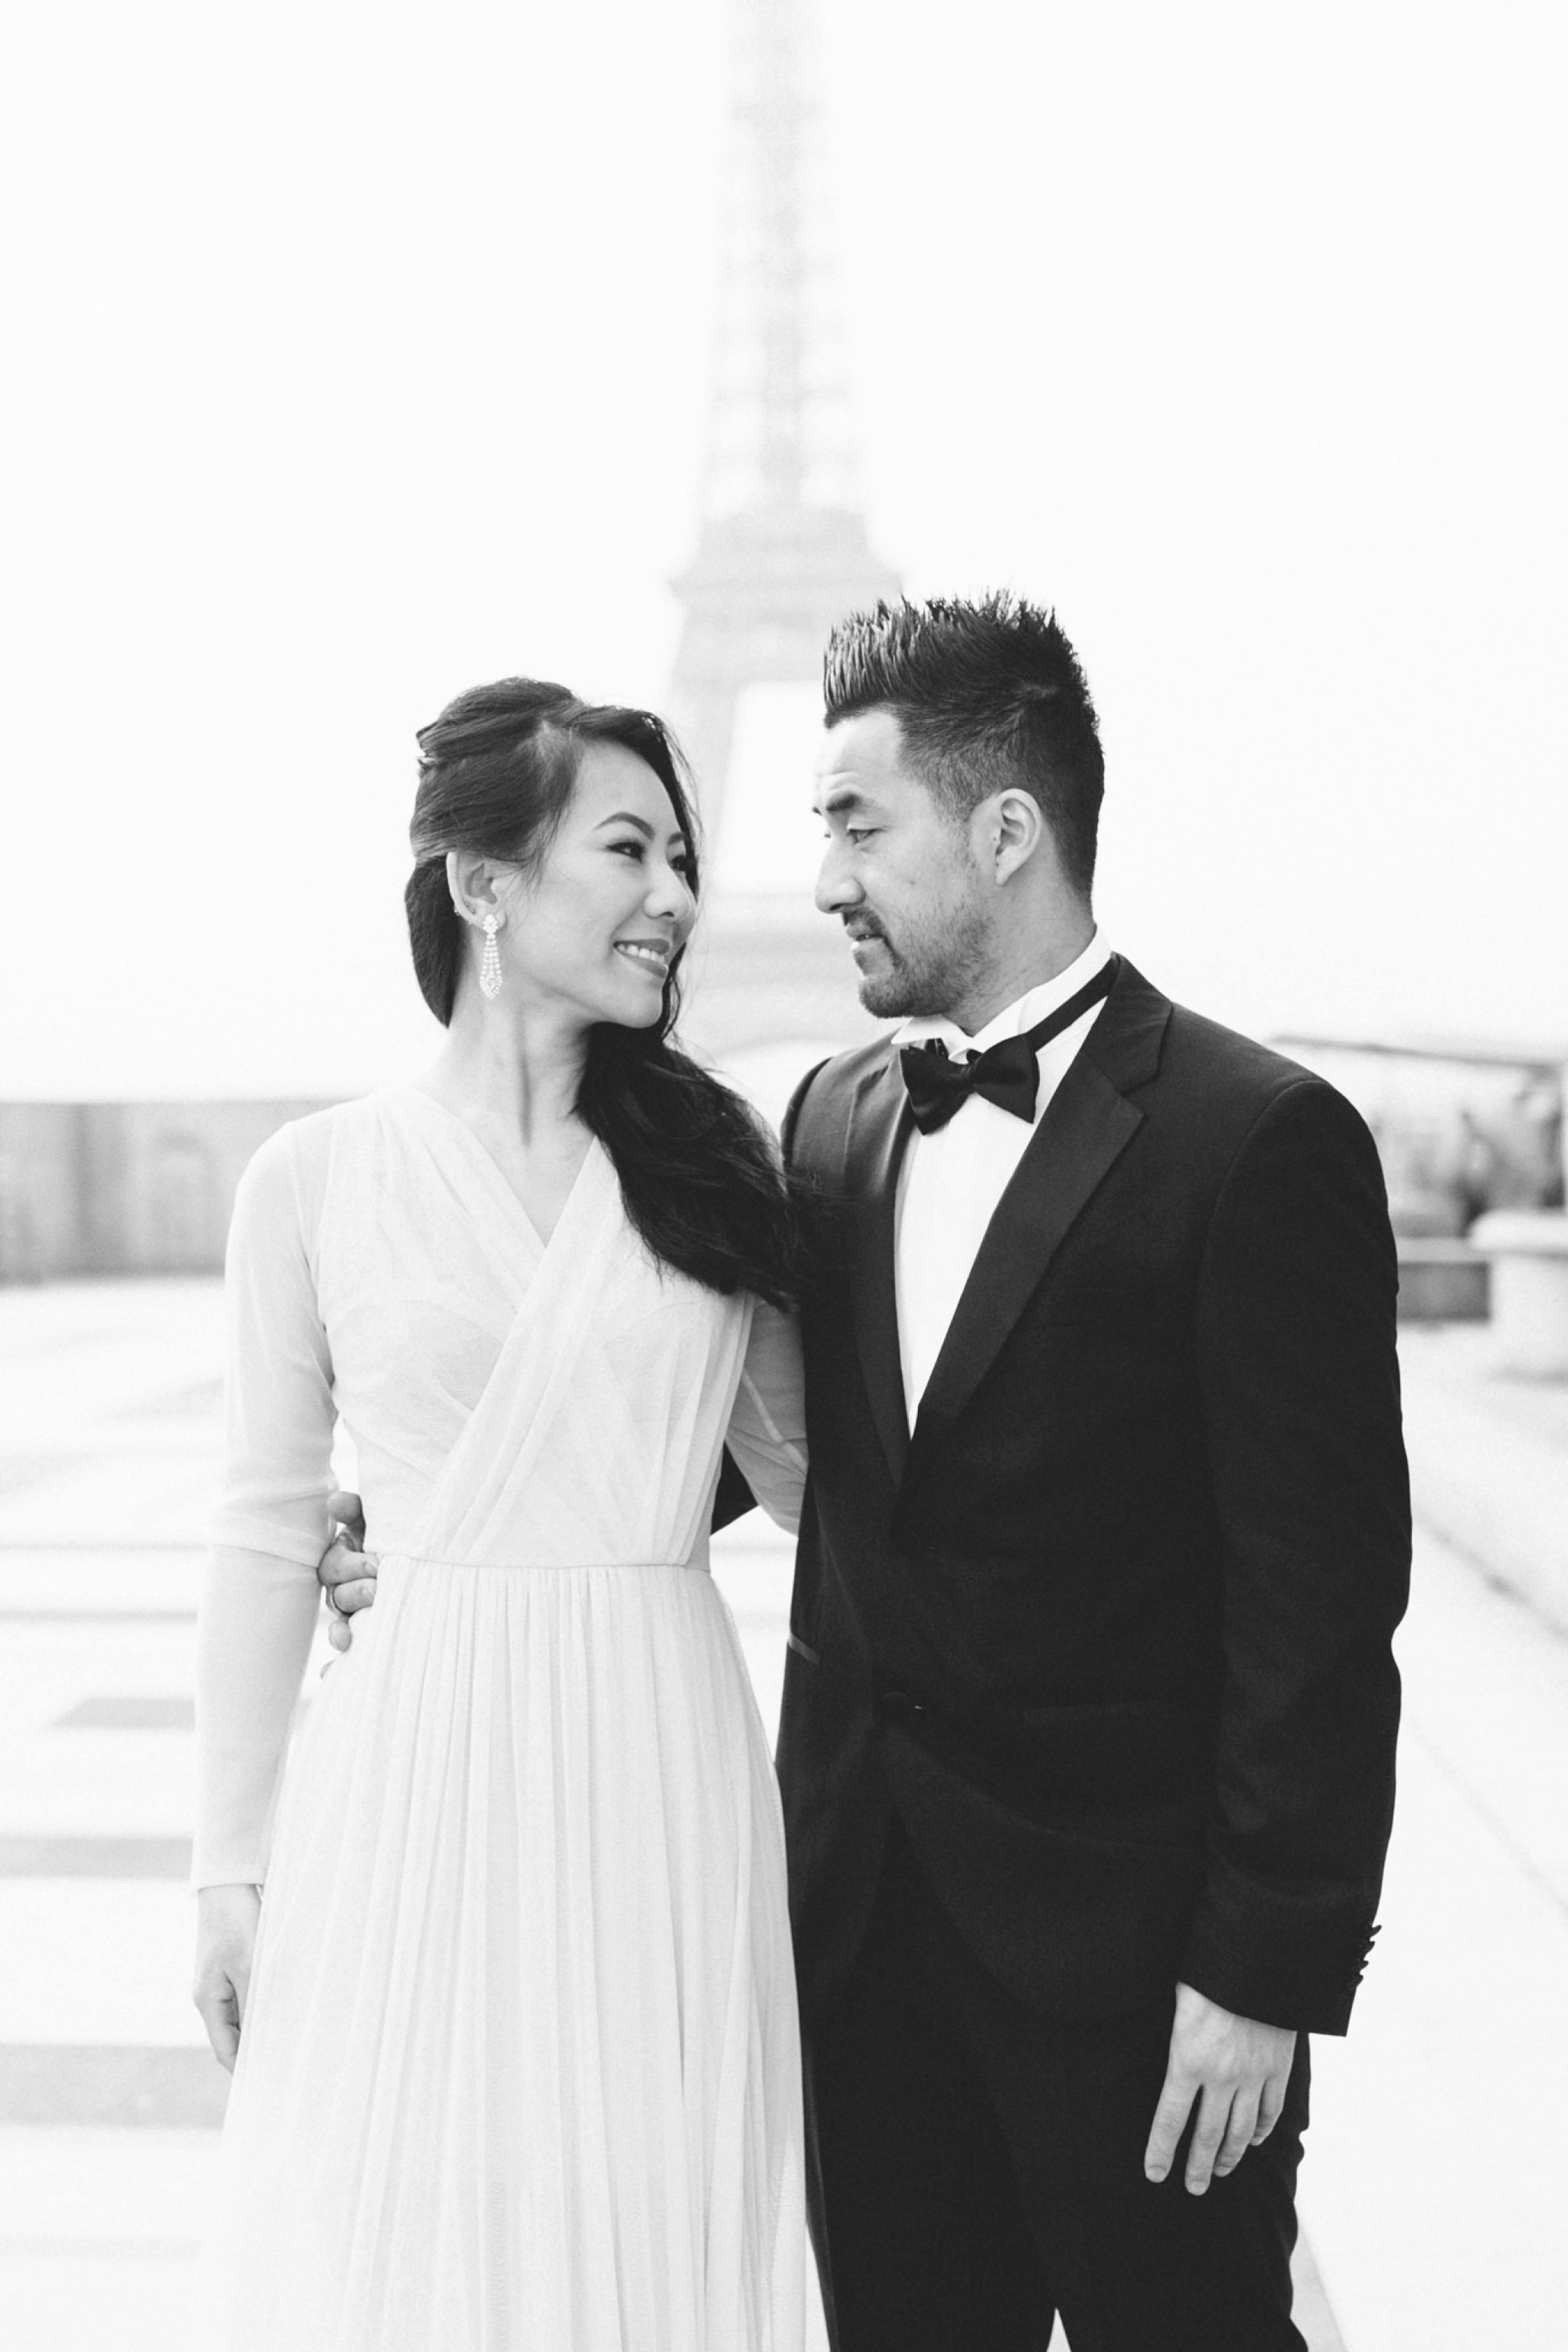 Suzanne_li_photography_paris_engagement_shoot_0022.jpg